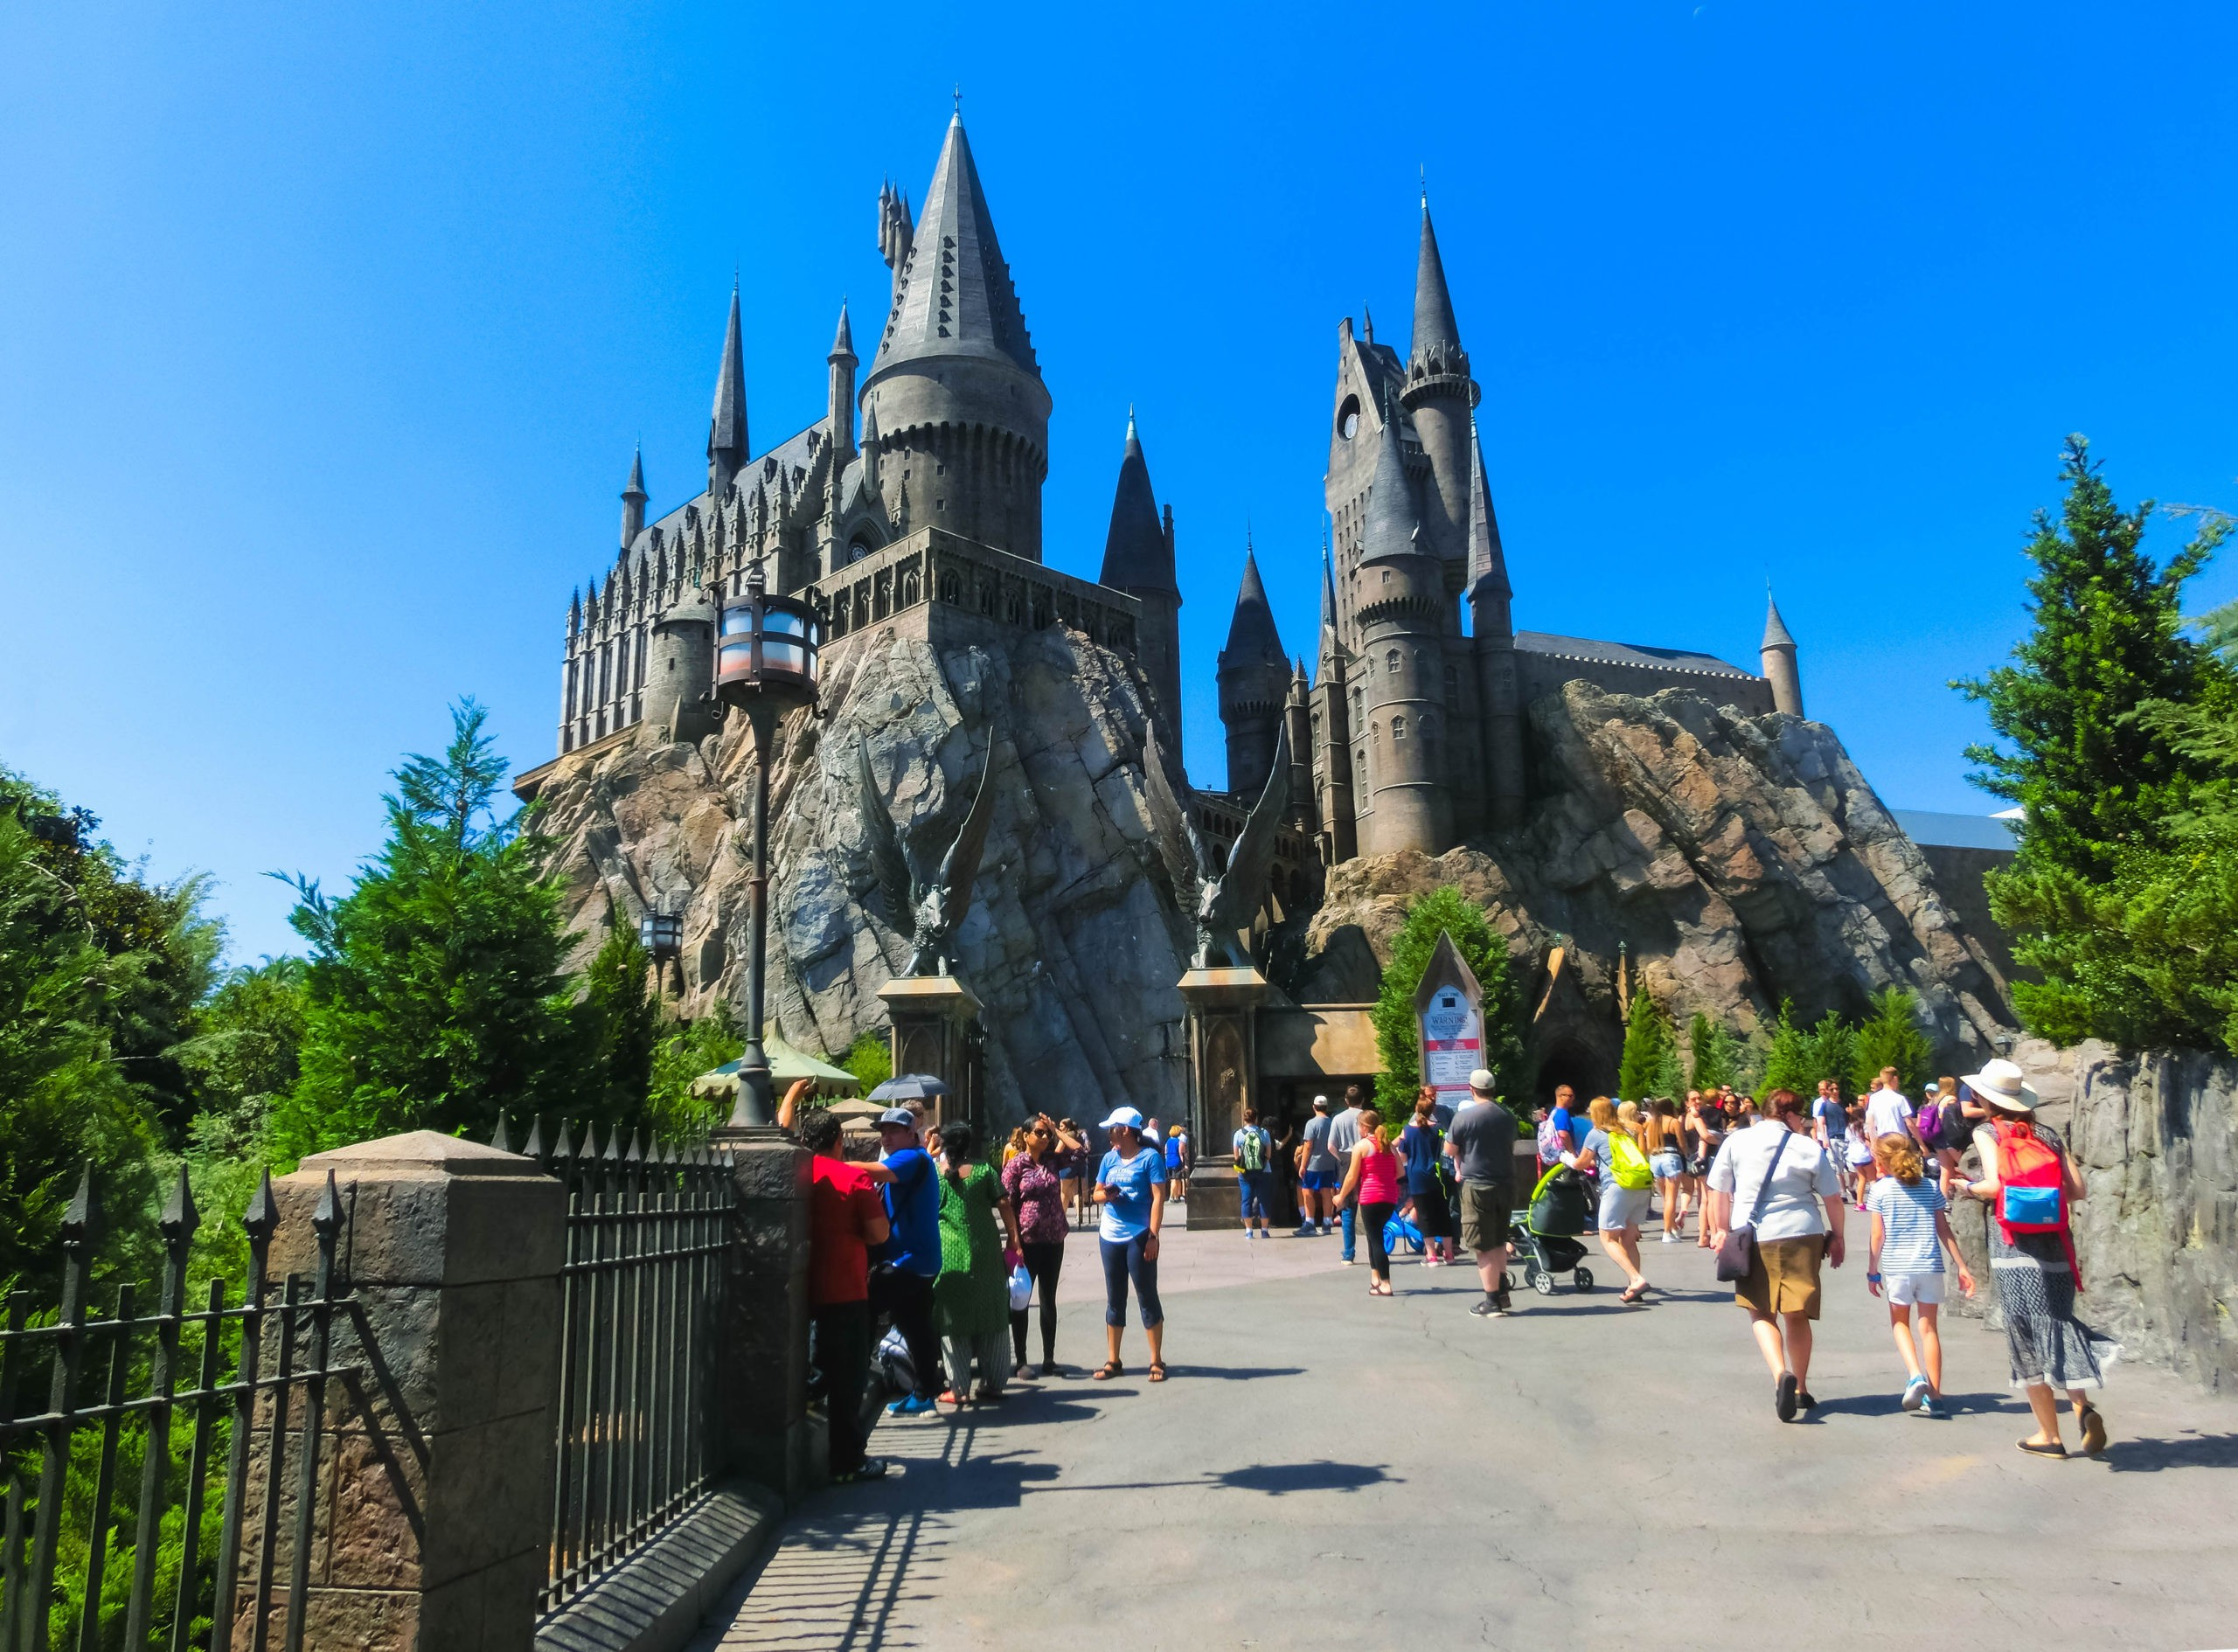 Orlando, Florida, USA - May 09, 2018: The people going to Hogwarts Castle at The Wizarding World Of Harry Potter in Adventure Island of Universal Studios Orlando. Universal Studios Orlando is a theme